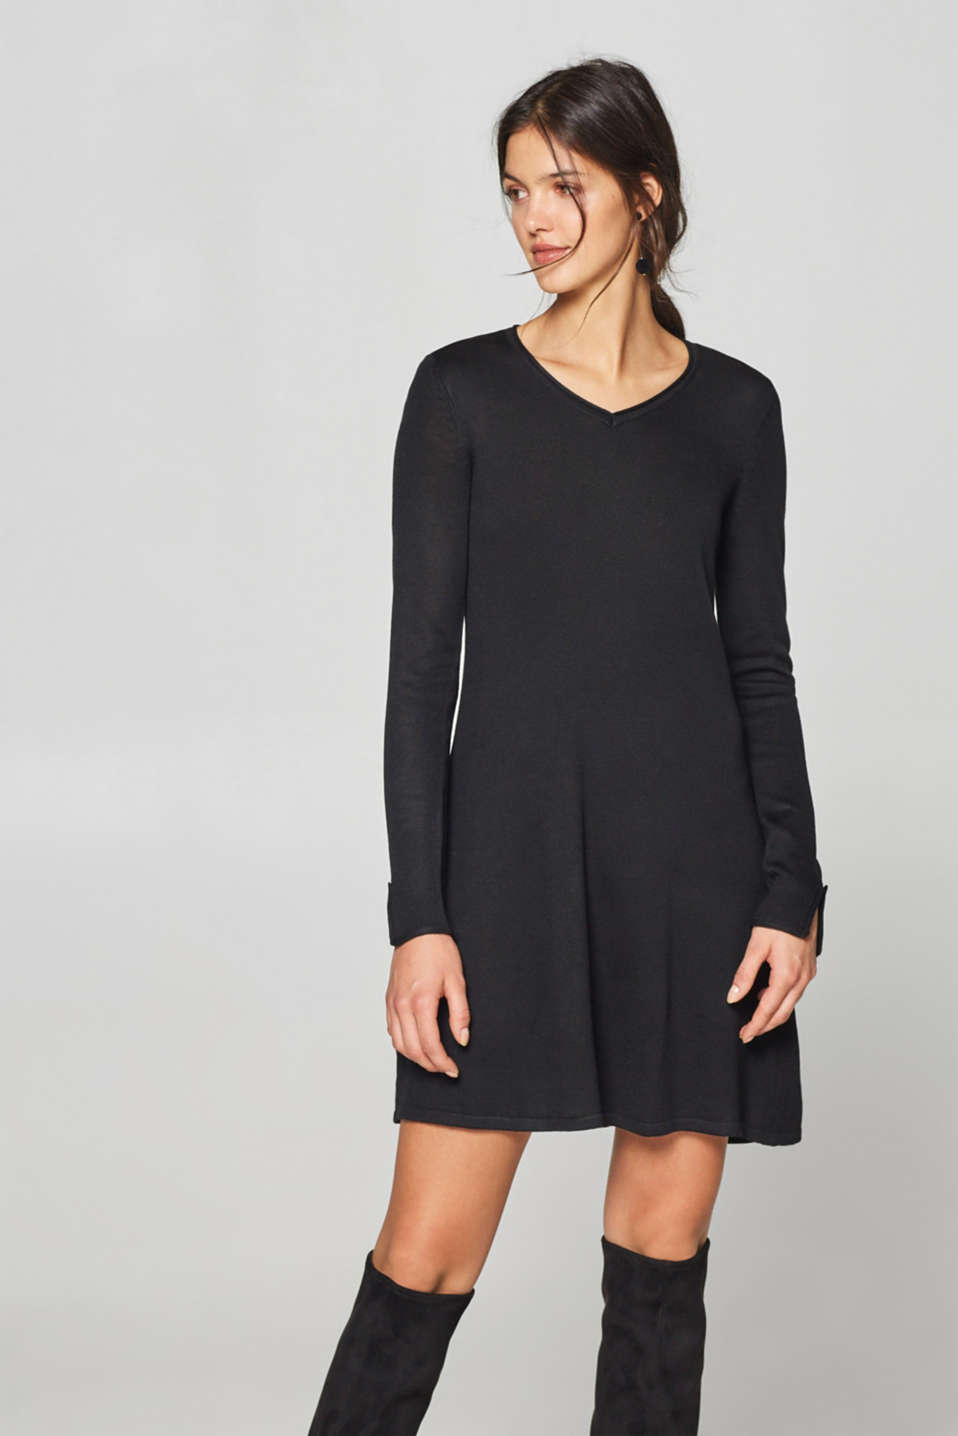 Esprit - Fine-knit dress with buttons on the sleeves